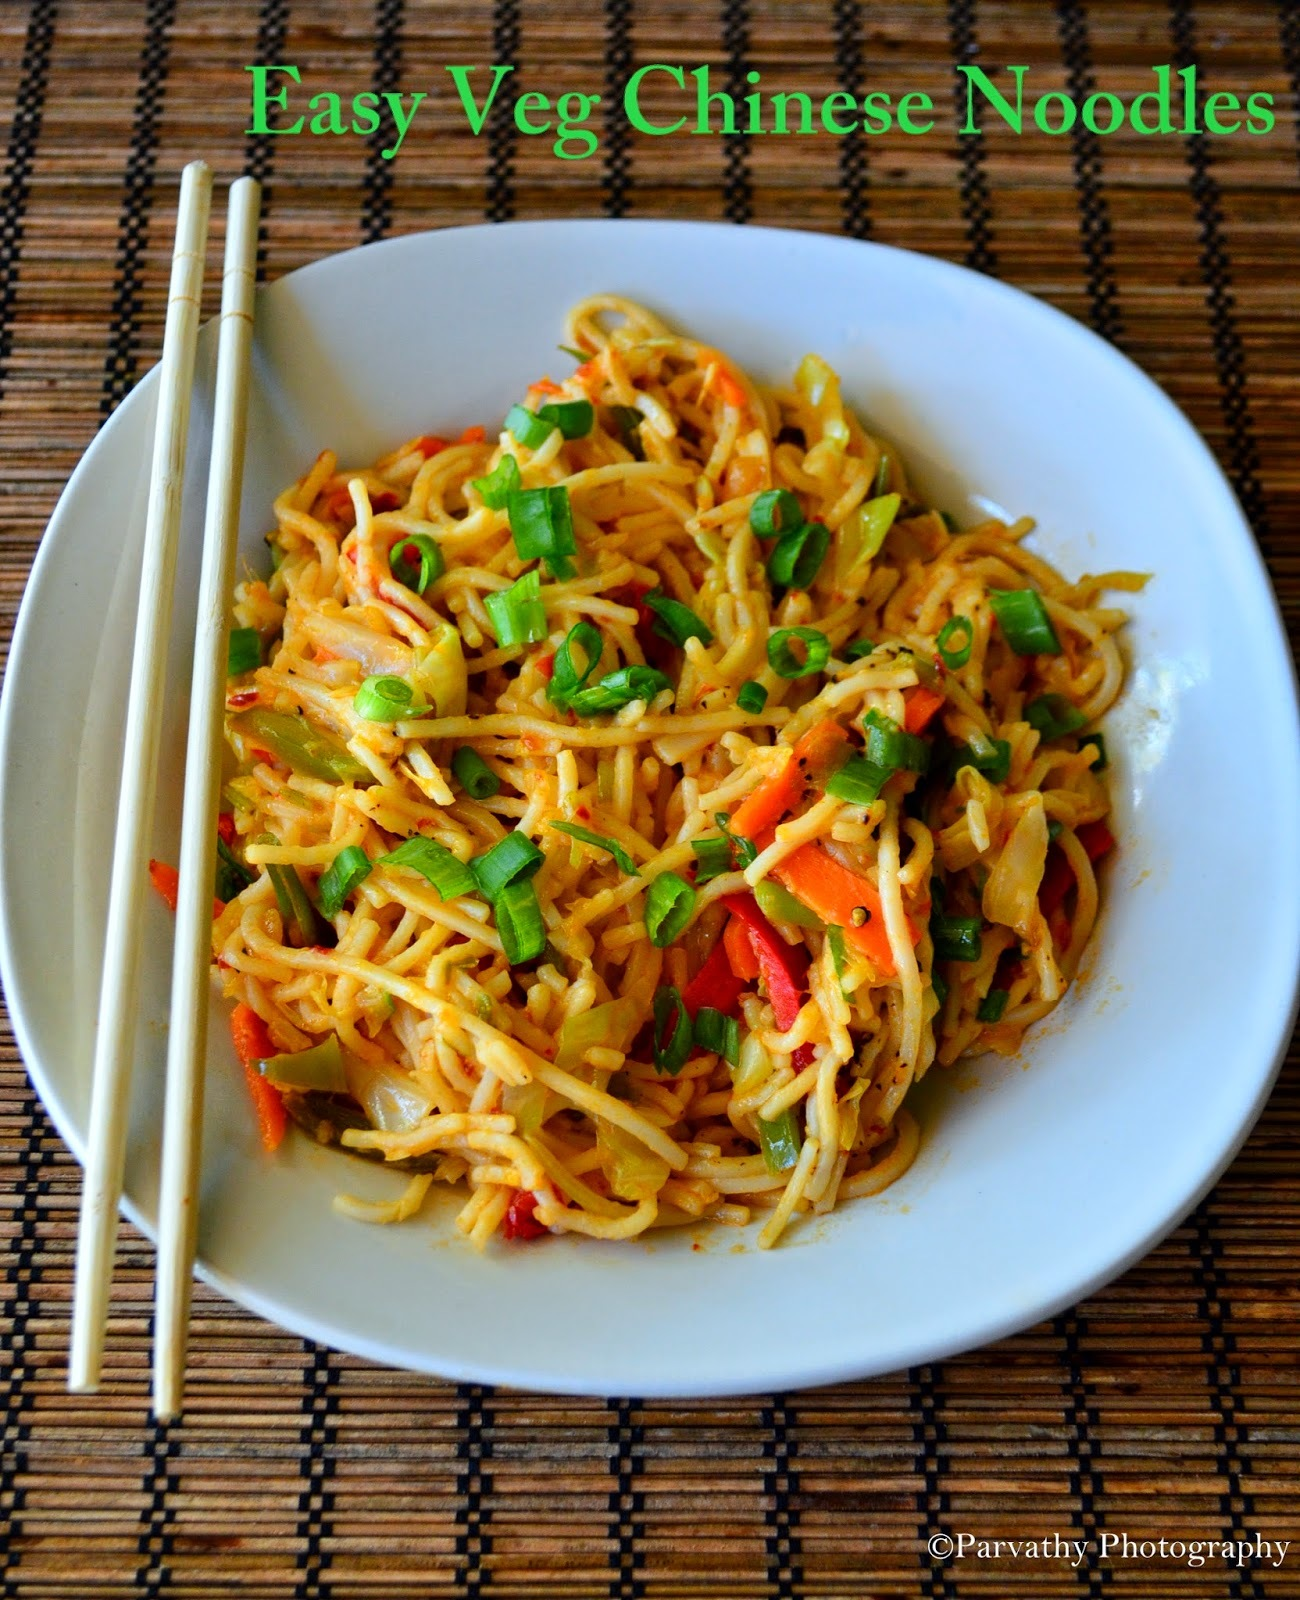 Restaurant-Style Chinese Noodle  Recipe | Indo-Chinese Noodle Recipe | Easy Veg Chinese Noodles